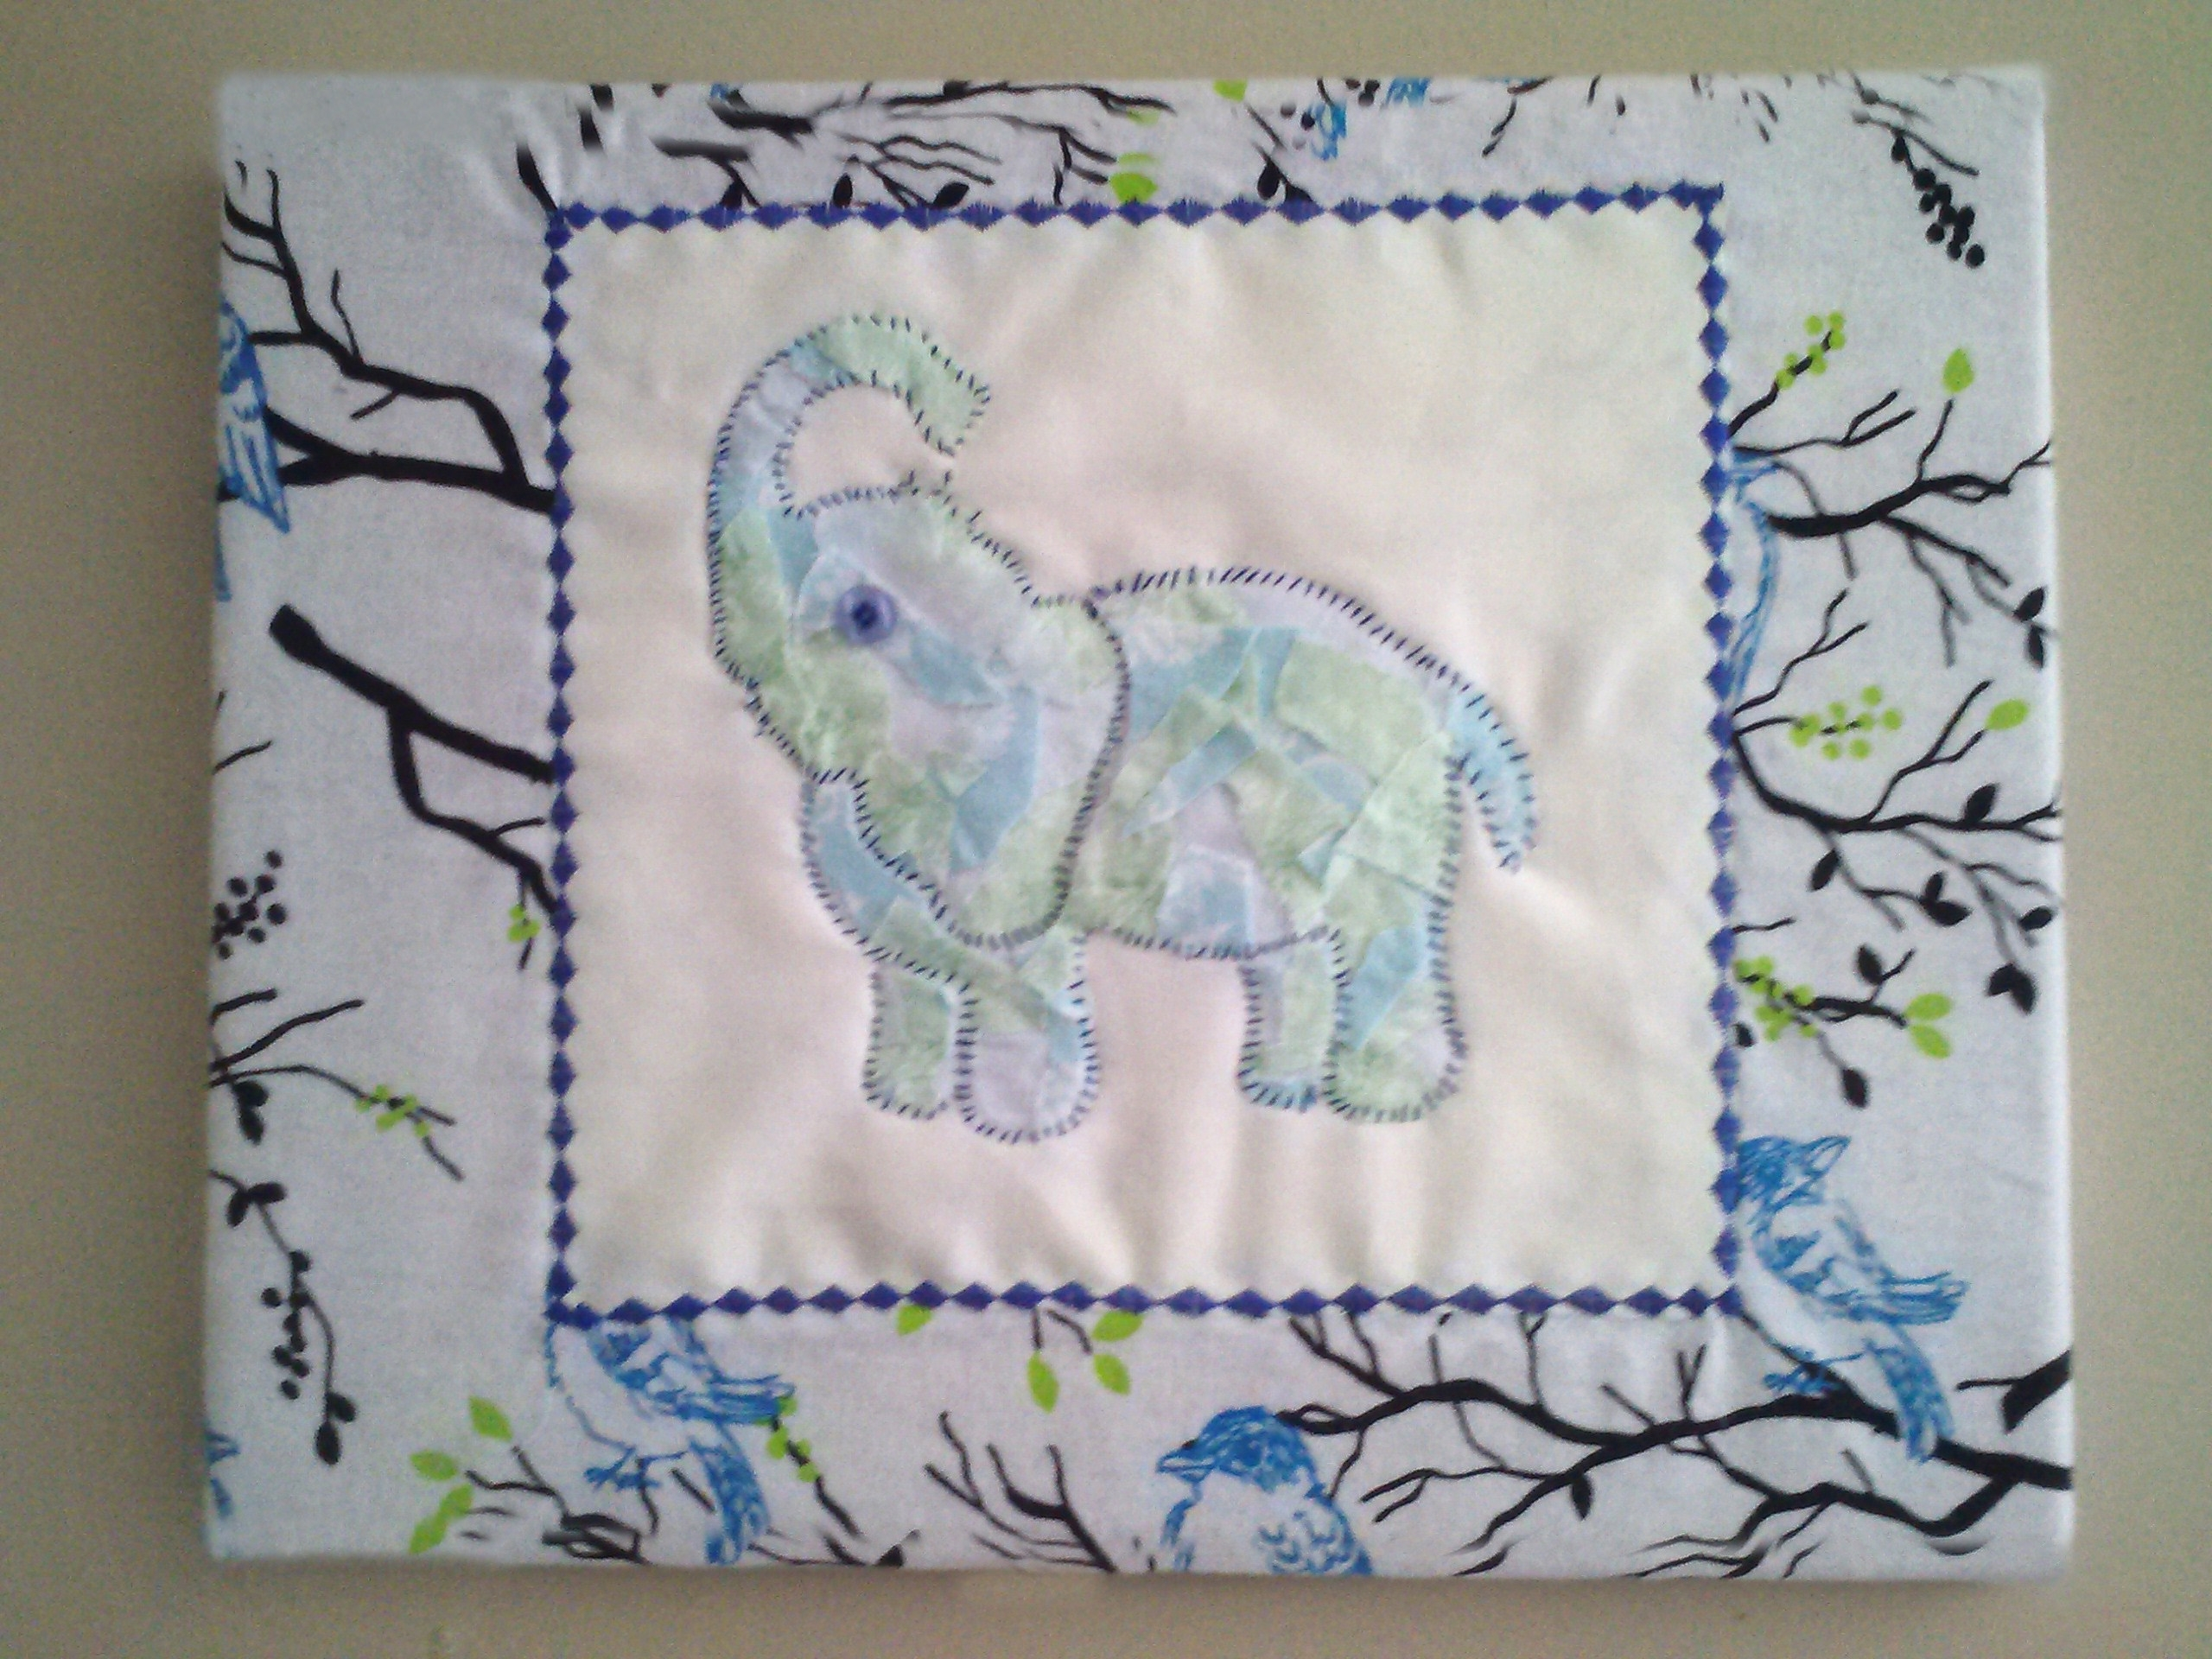 Fabric Wall Art For Nursery Regarding Favorite Diy Wall Art For Nursery: Fabric Covered Canvas (View 2 of 15)